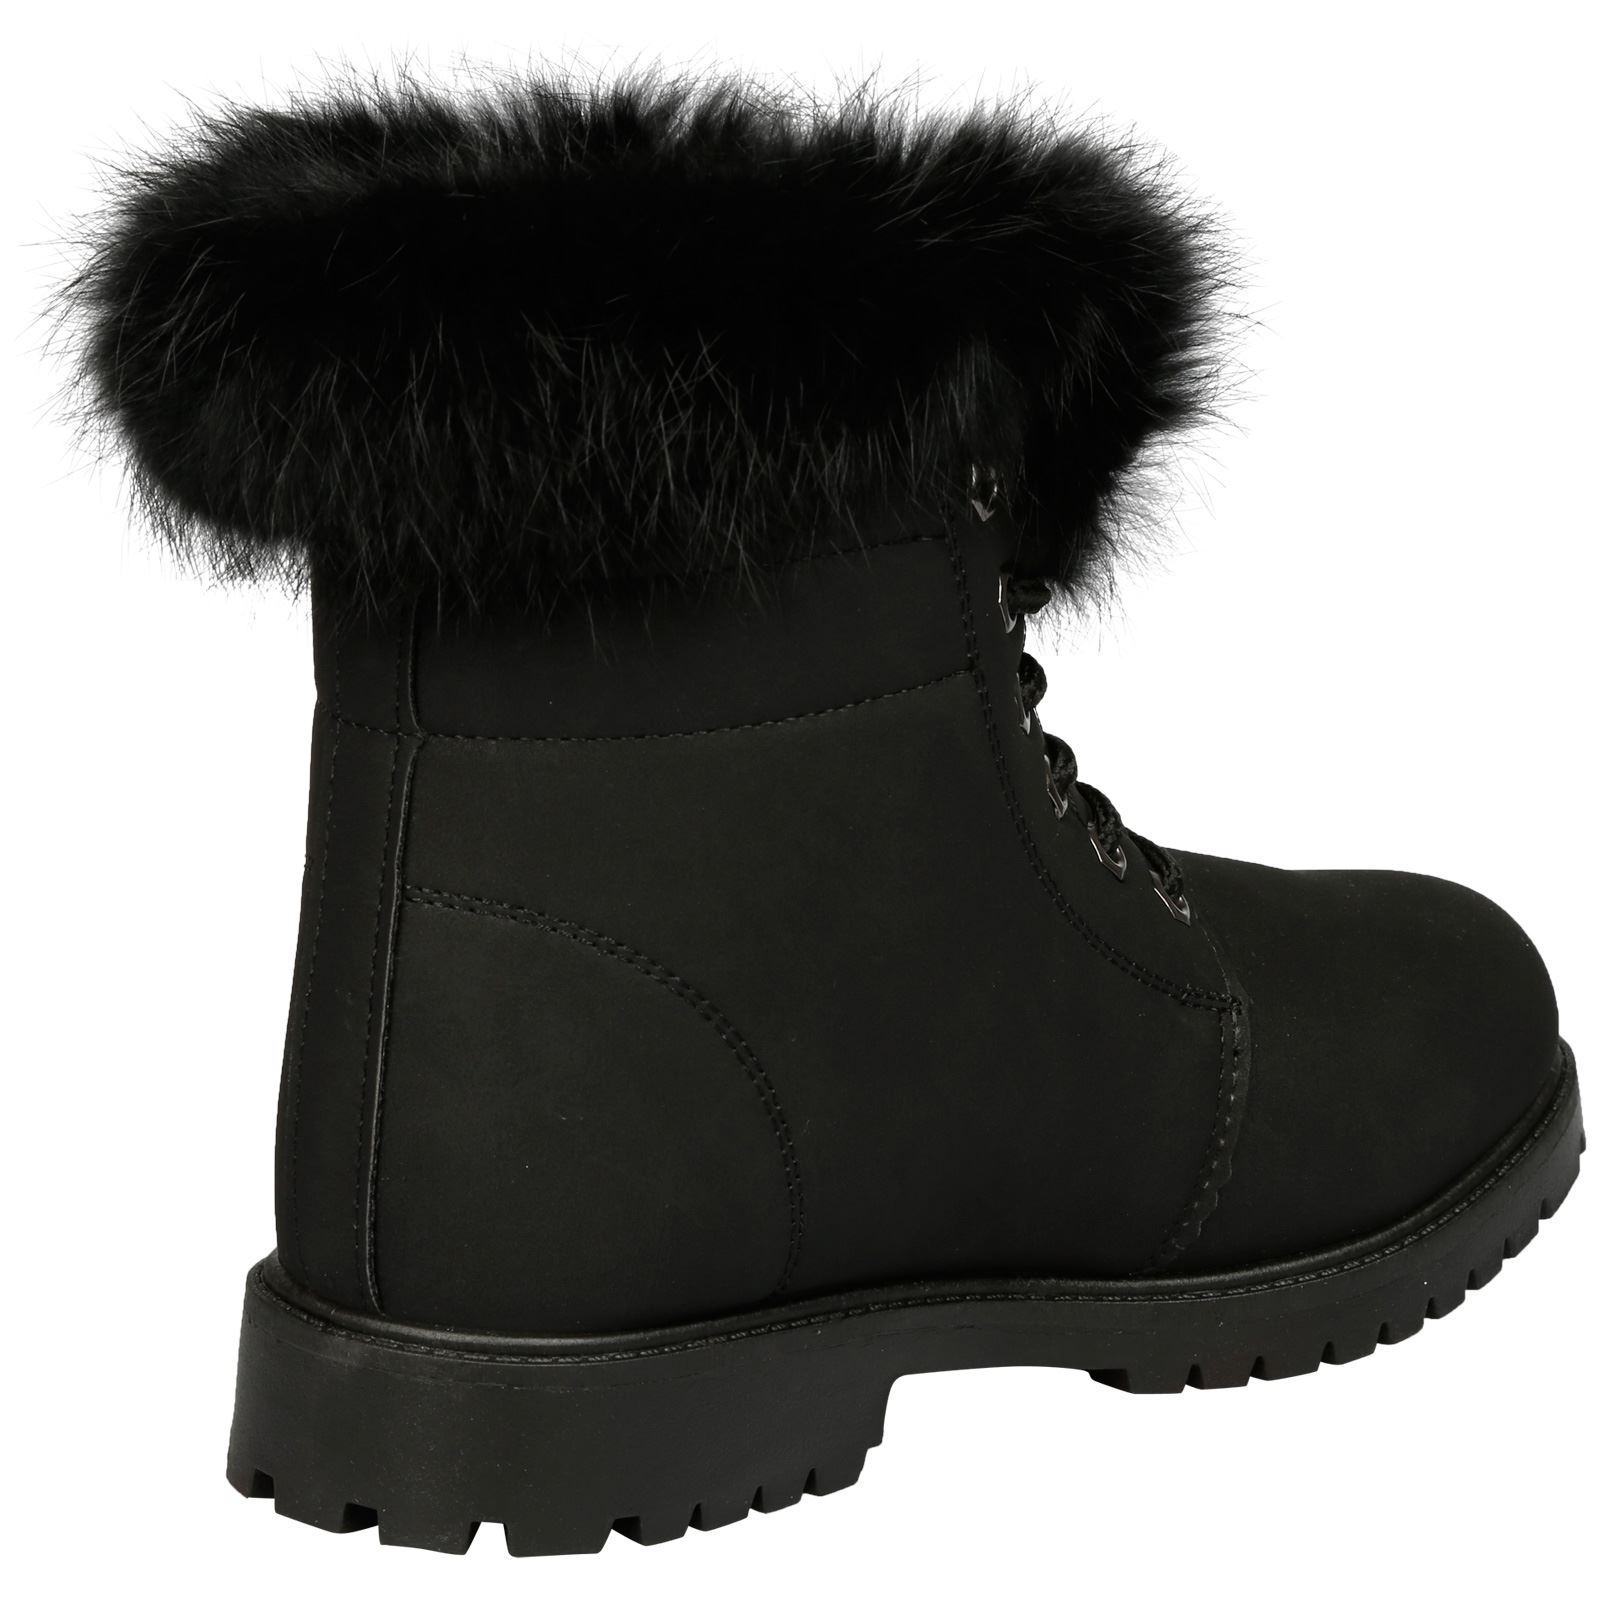 NEW-WOMEN-SHOES-LADIES-FUR-LINED-LOW-HEEL-LACE-UP-ANKLE-BOOTS-CASUAL-STYLE-SIZE thumbnail 10